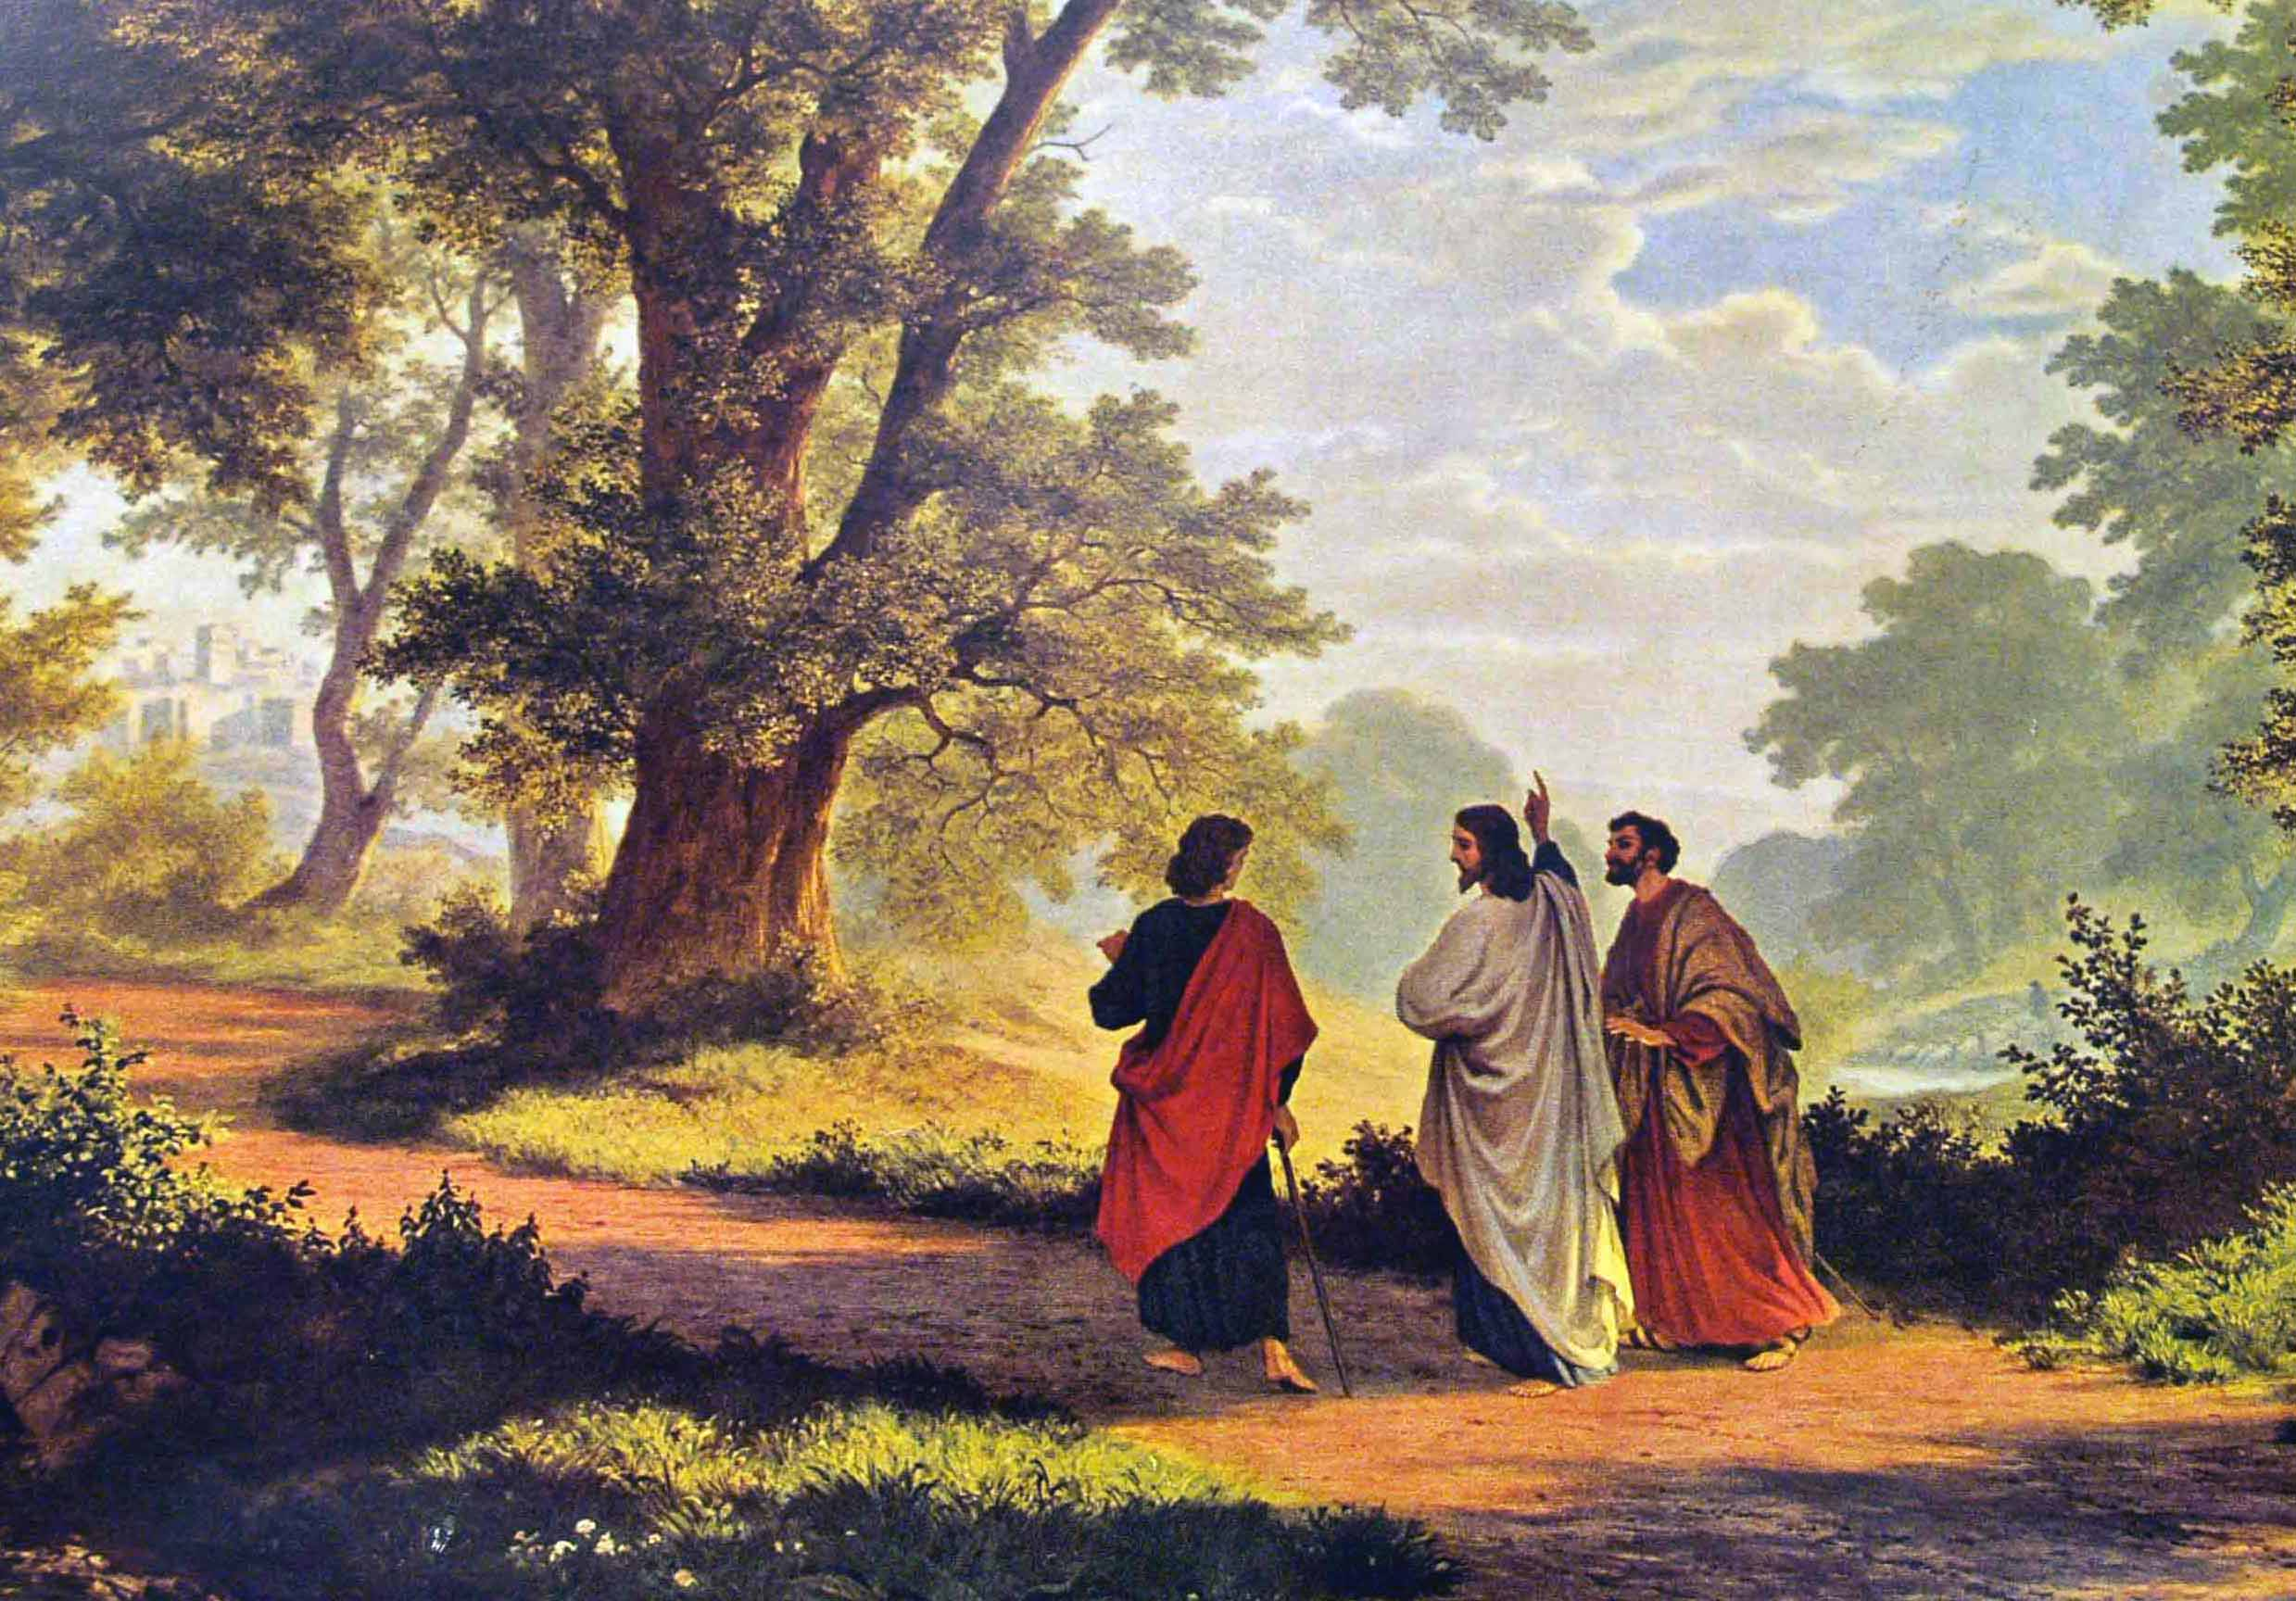 ... Christ: Do you know the way to Emmaus? - The United Methodist Church